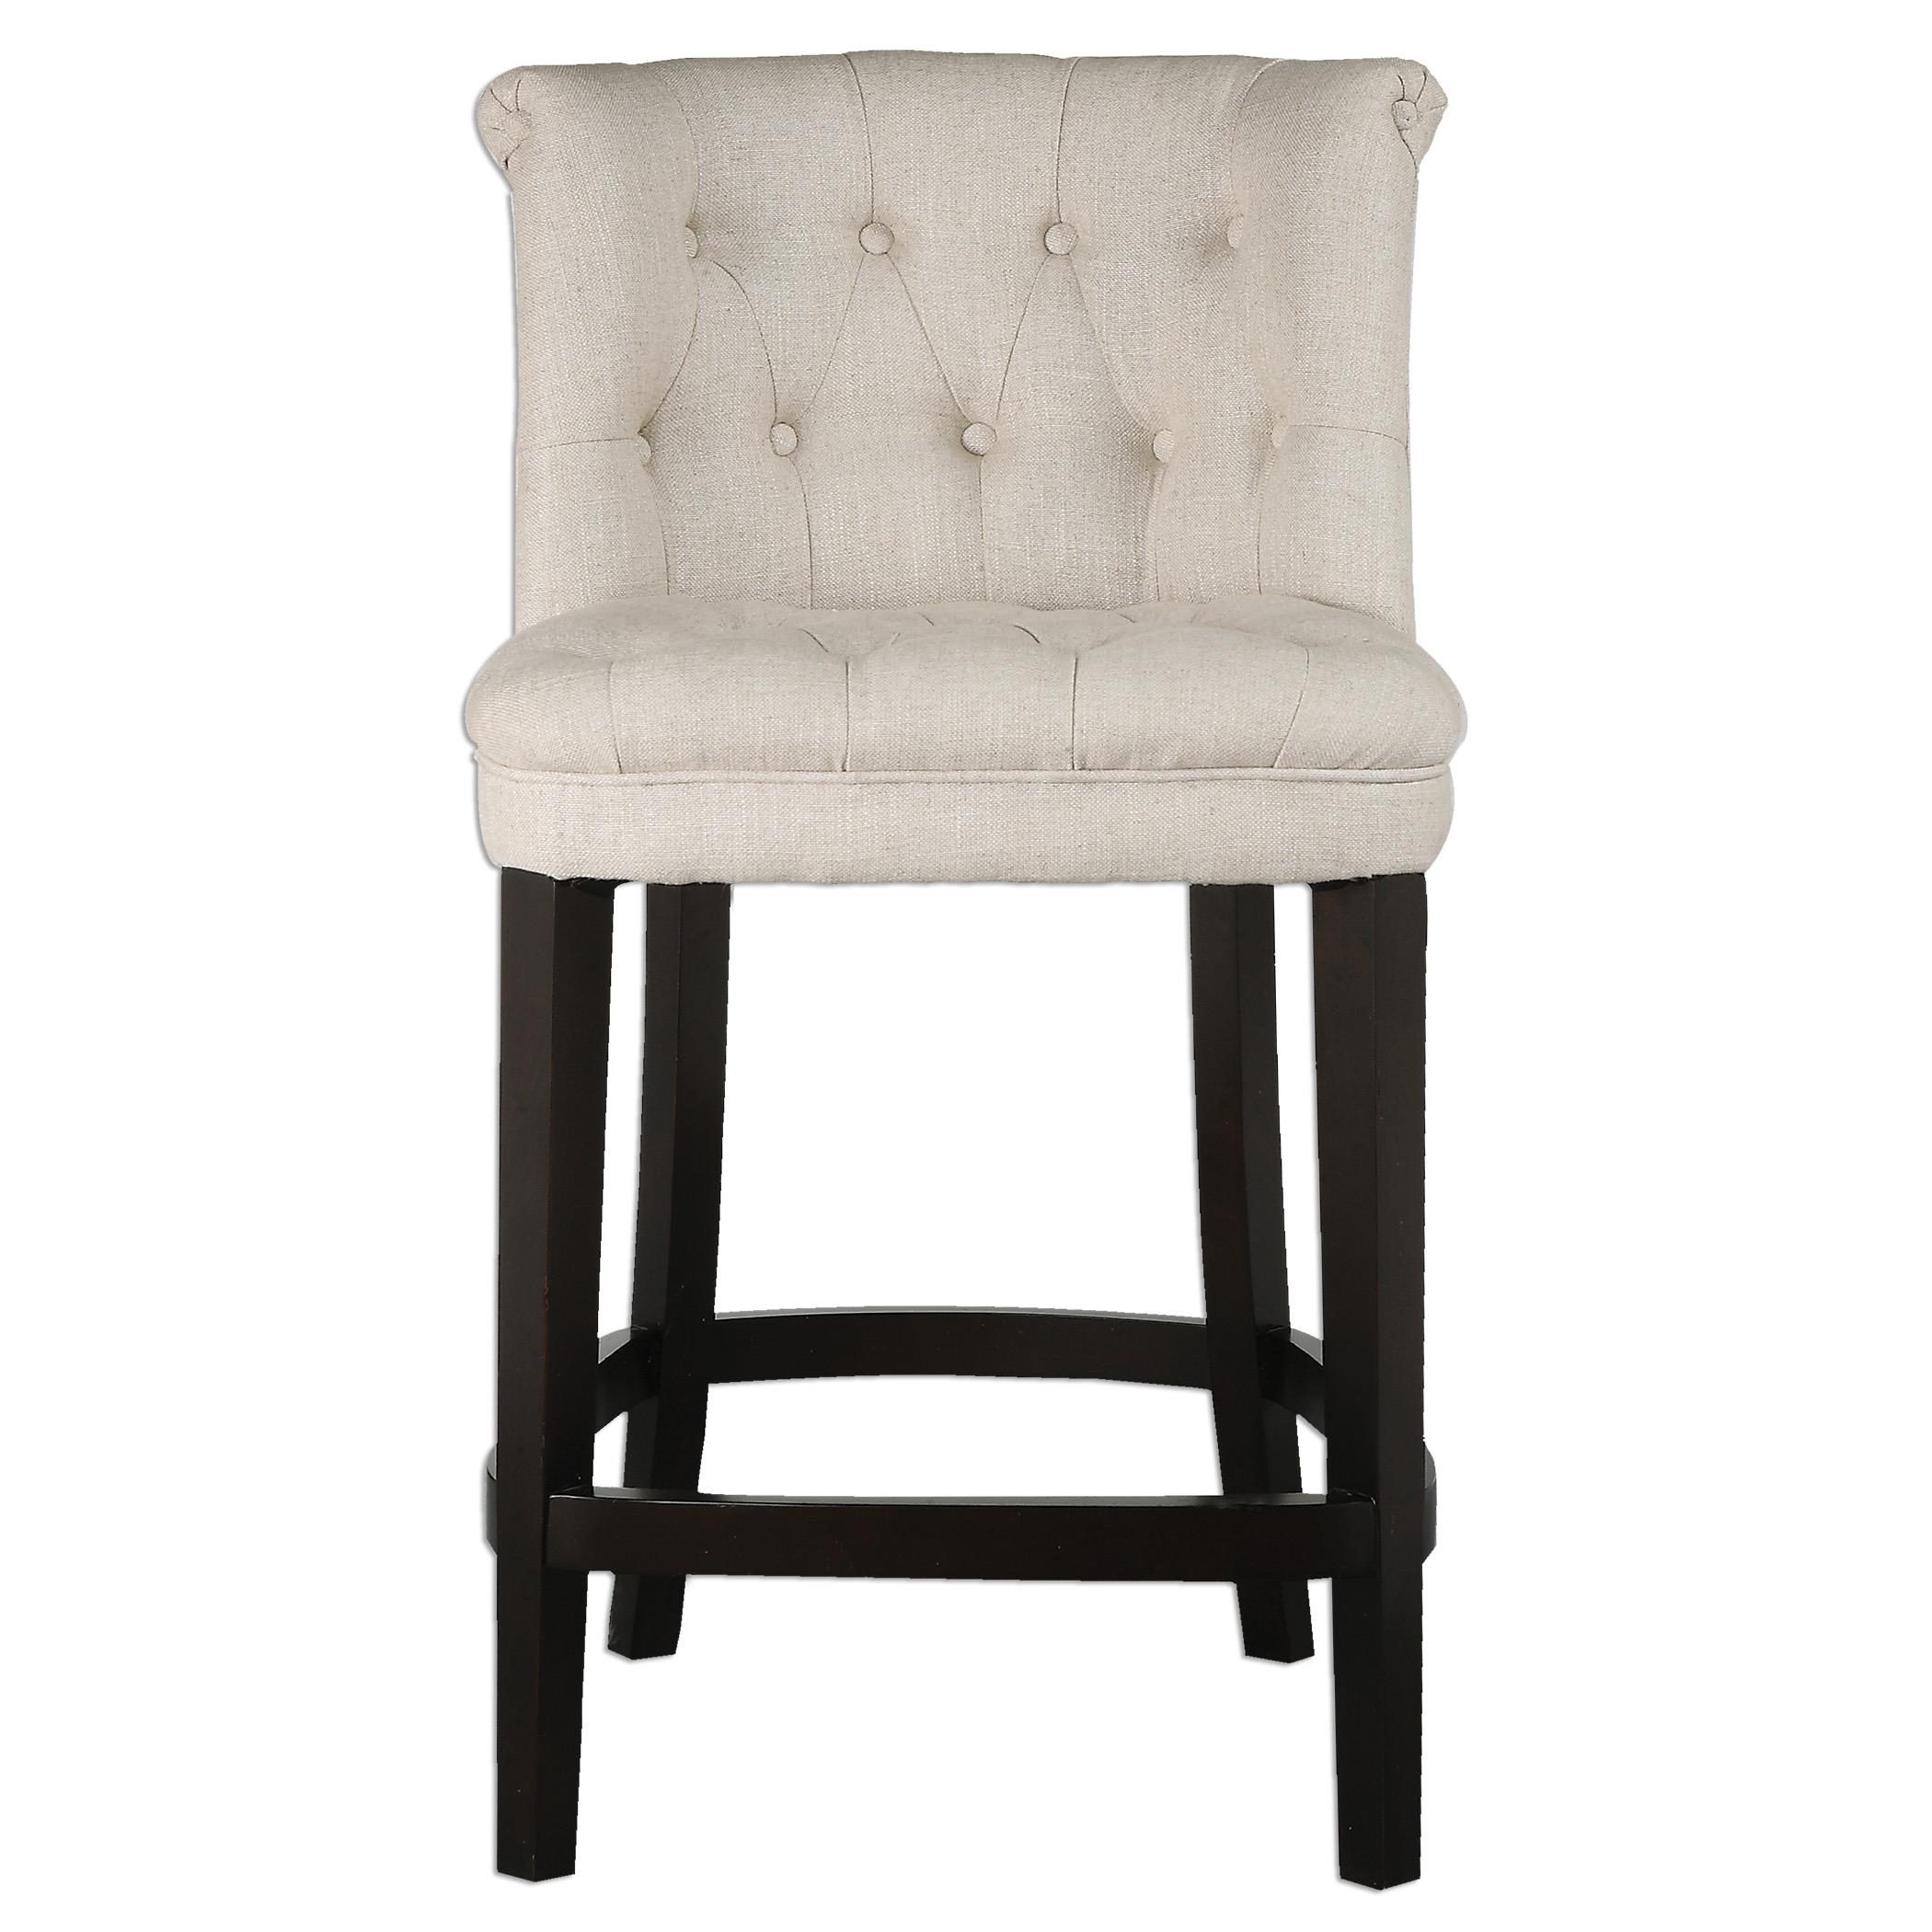 Uttermost Accent Furniture Kavanagh Tufted Counter Stool - Item Number: 23236